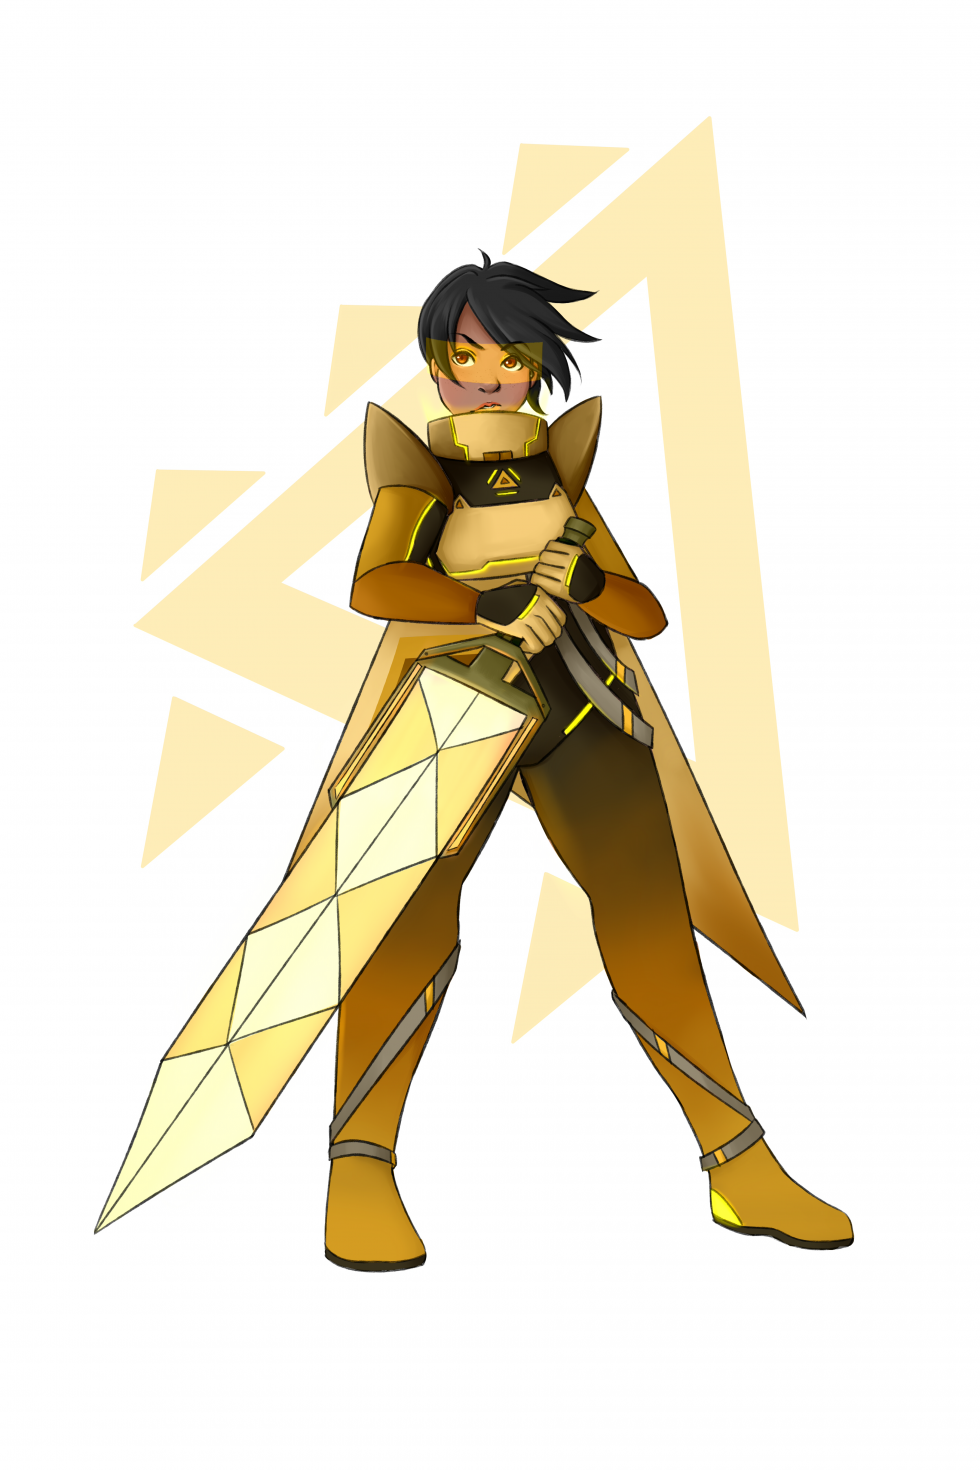 Girl in a uniform holding a glowing yellow sword across her body with a yellow background image of a triangle pattern.